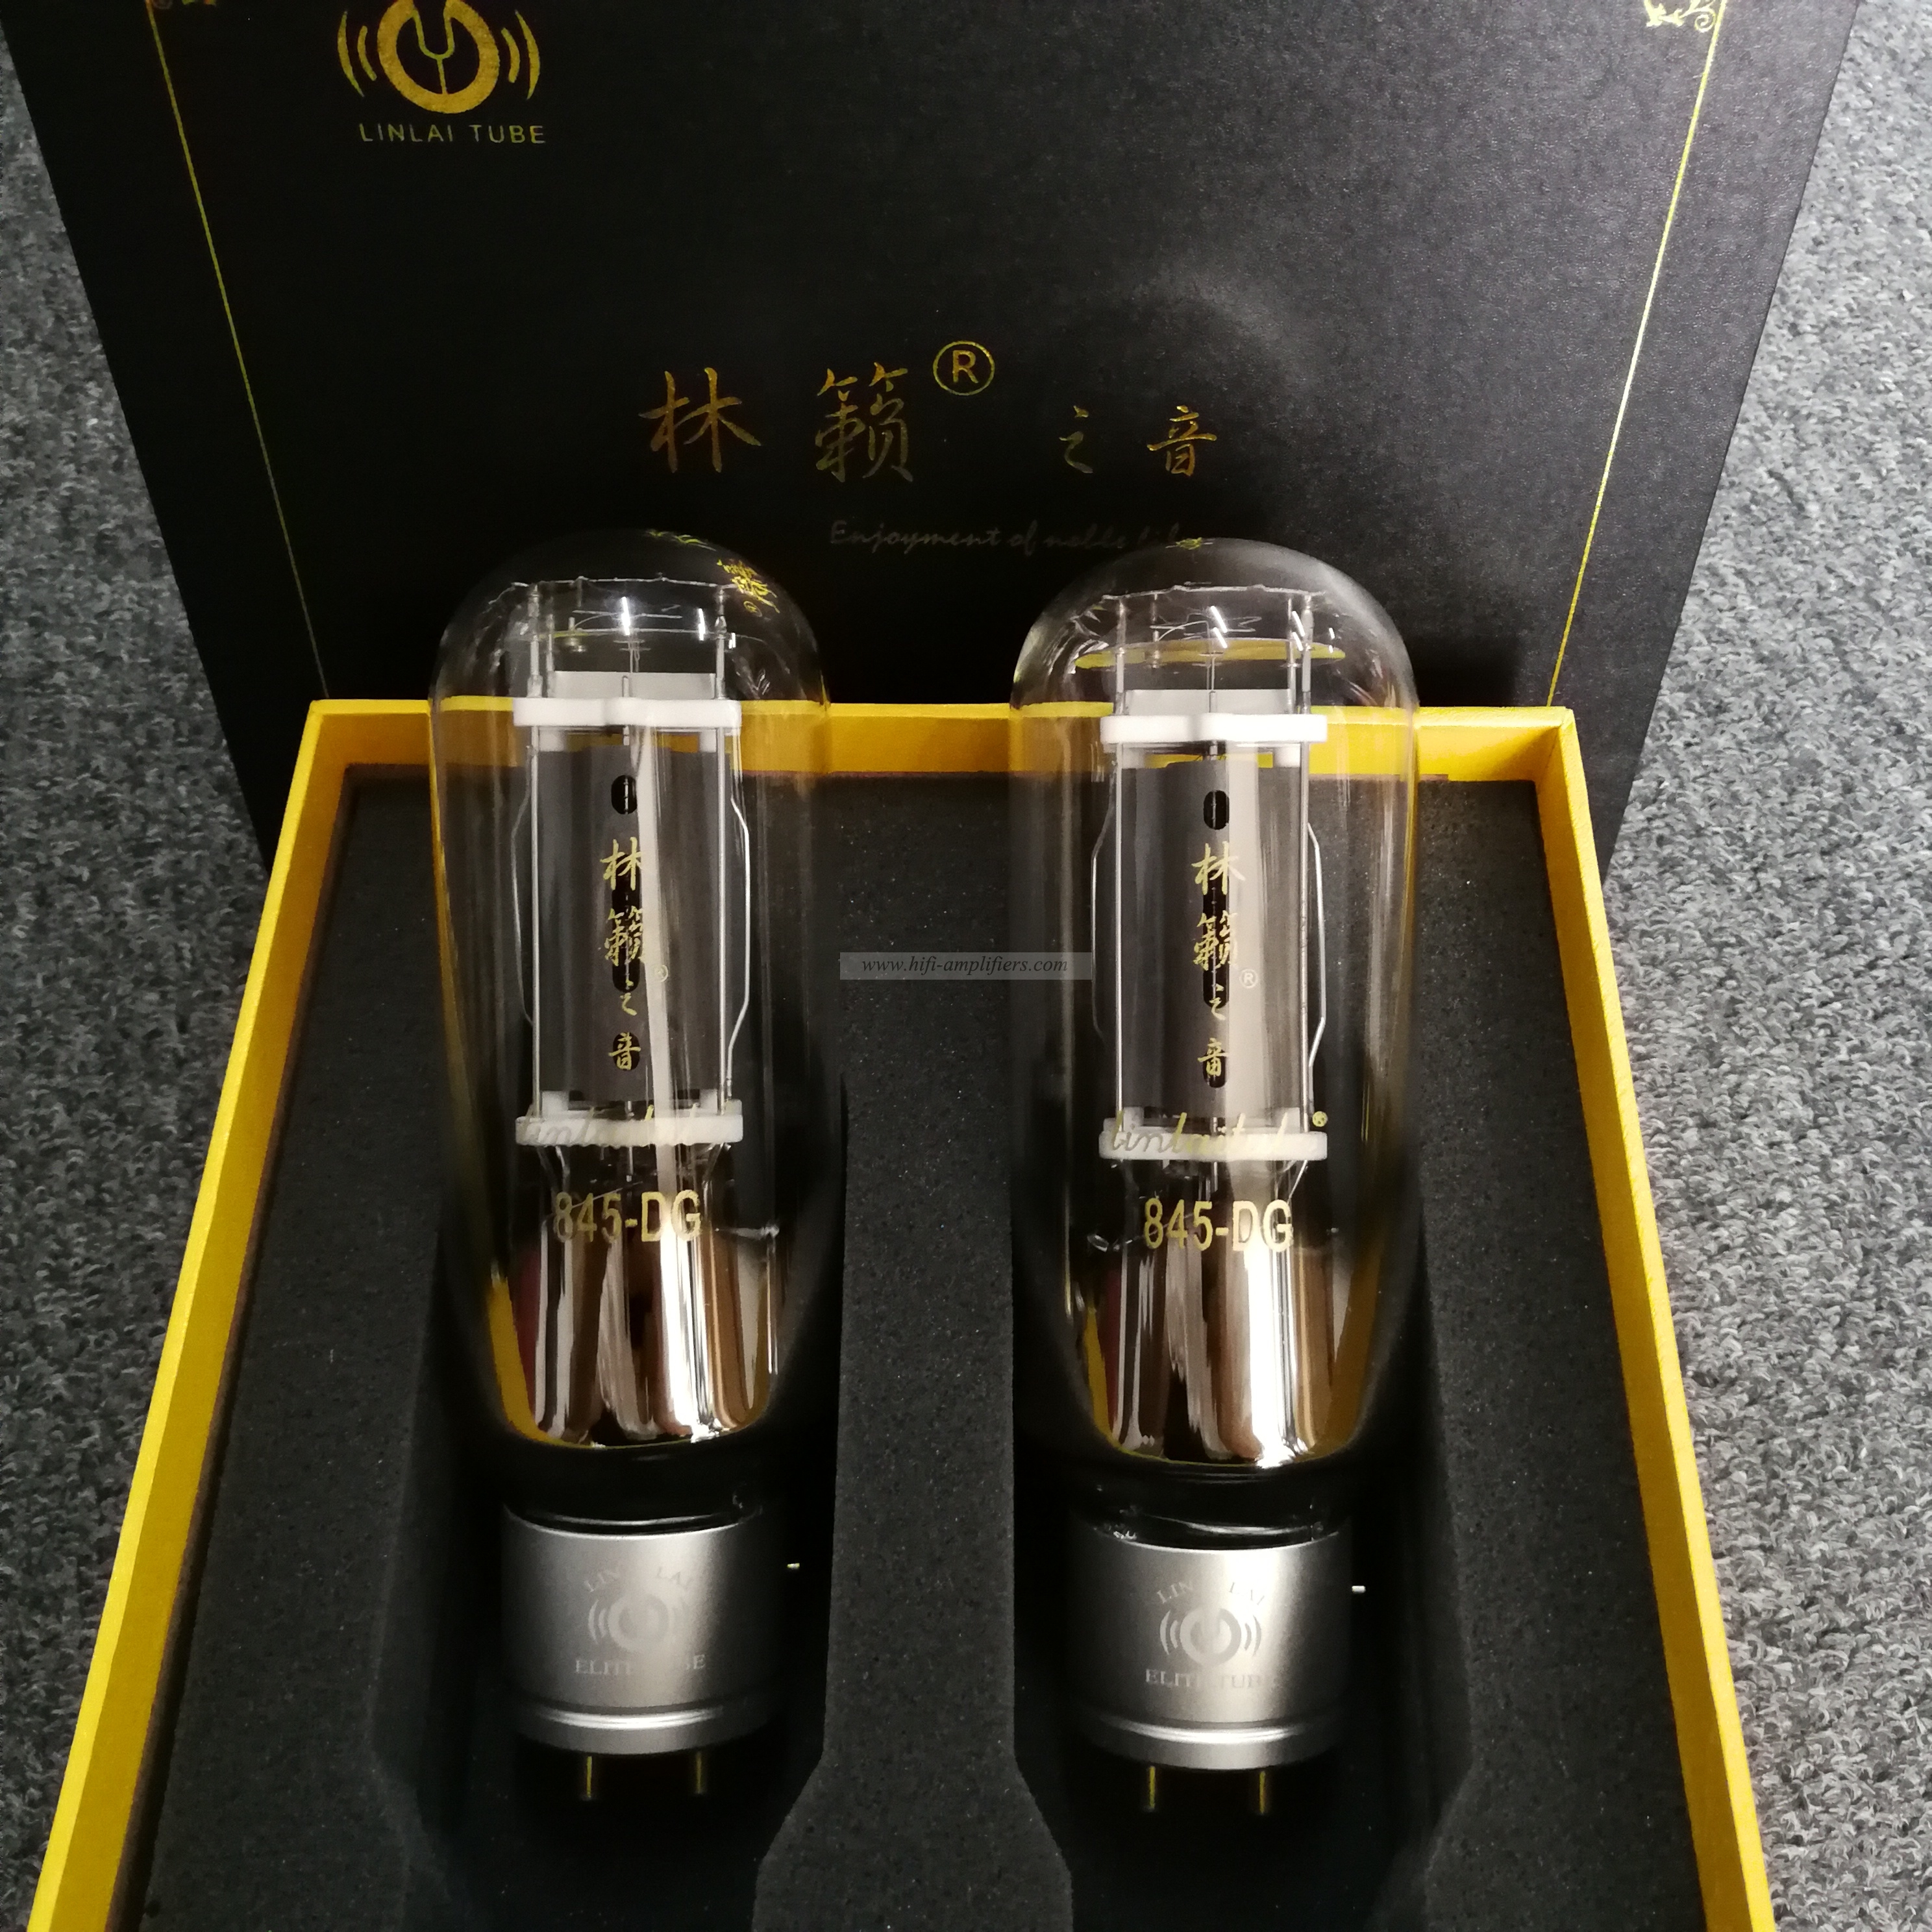 LINLAITUBE DG Series 845-DG Hi-end Vacuum Tube Replace Shuguang 845 Matched Pair